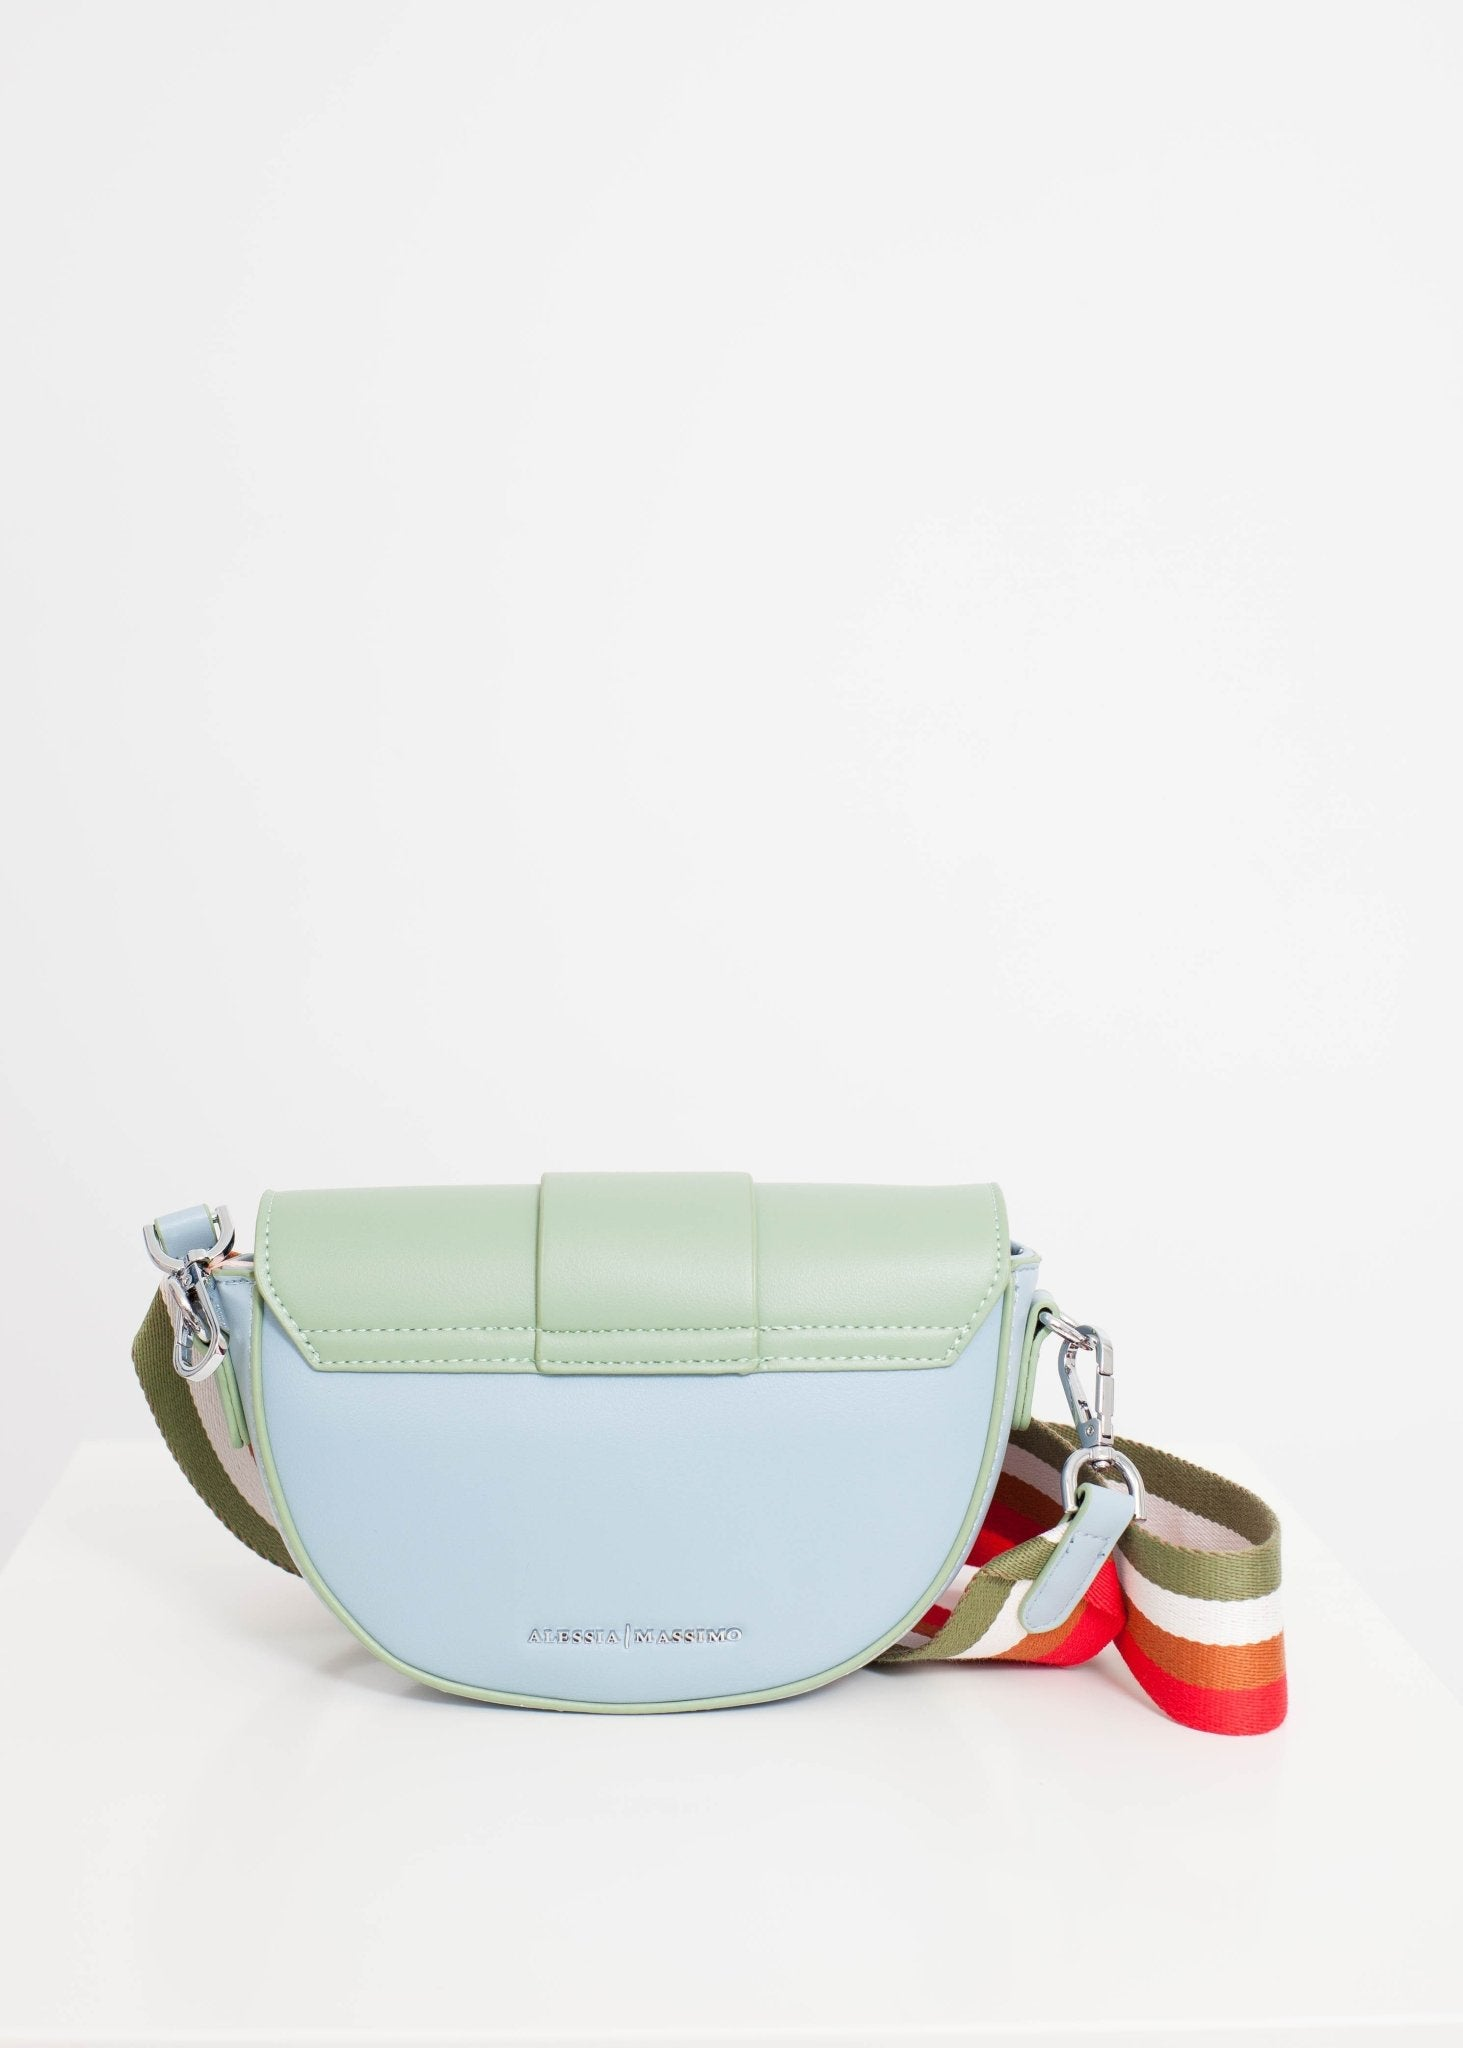 Alex Cross Body Bag In Blue Mix - The Walk in Wardrobe